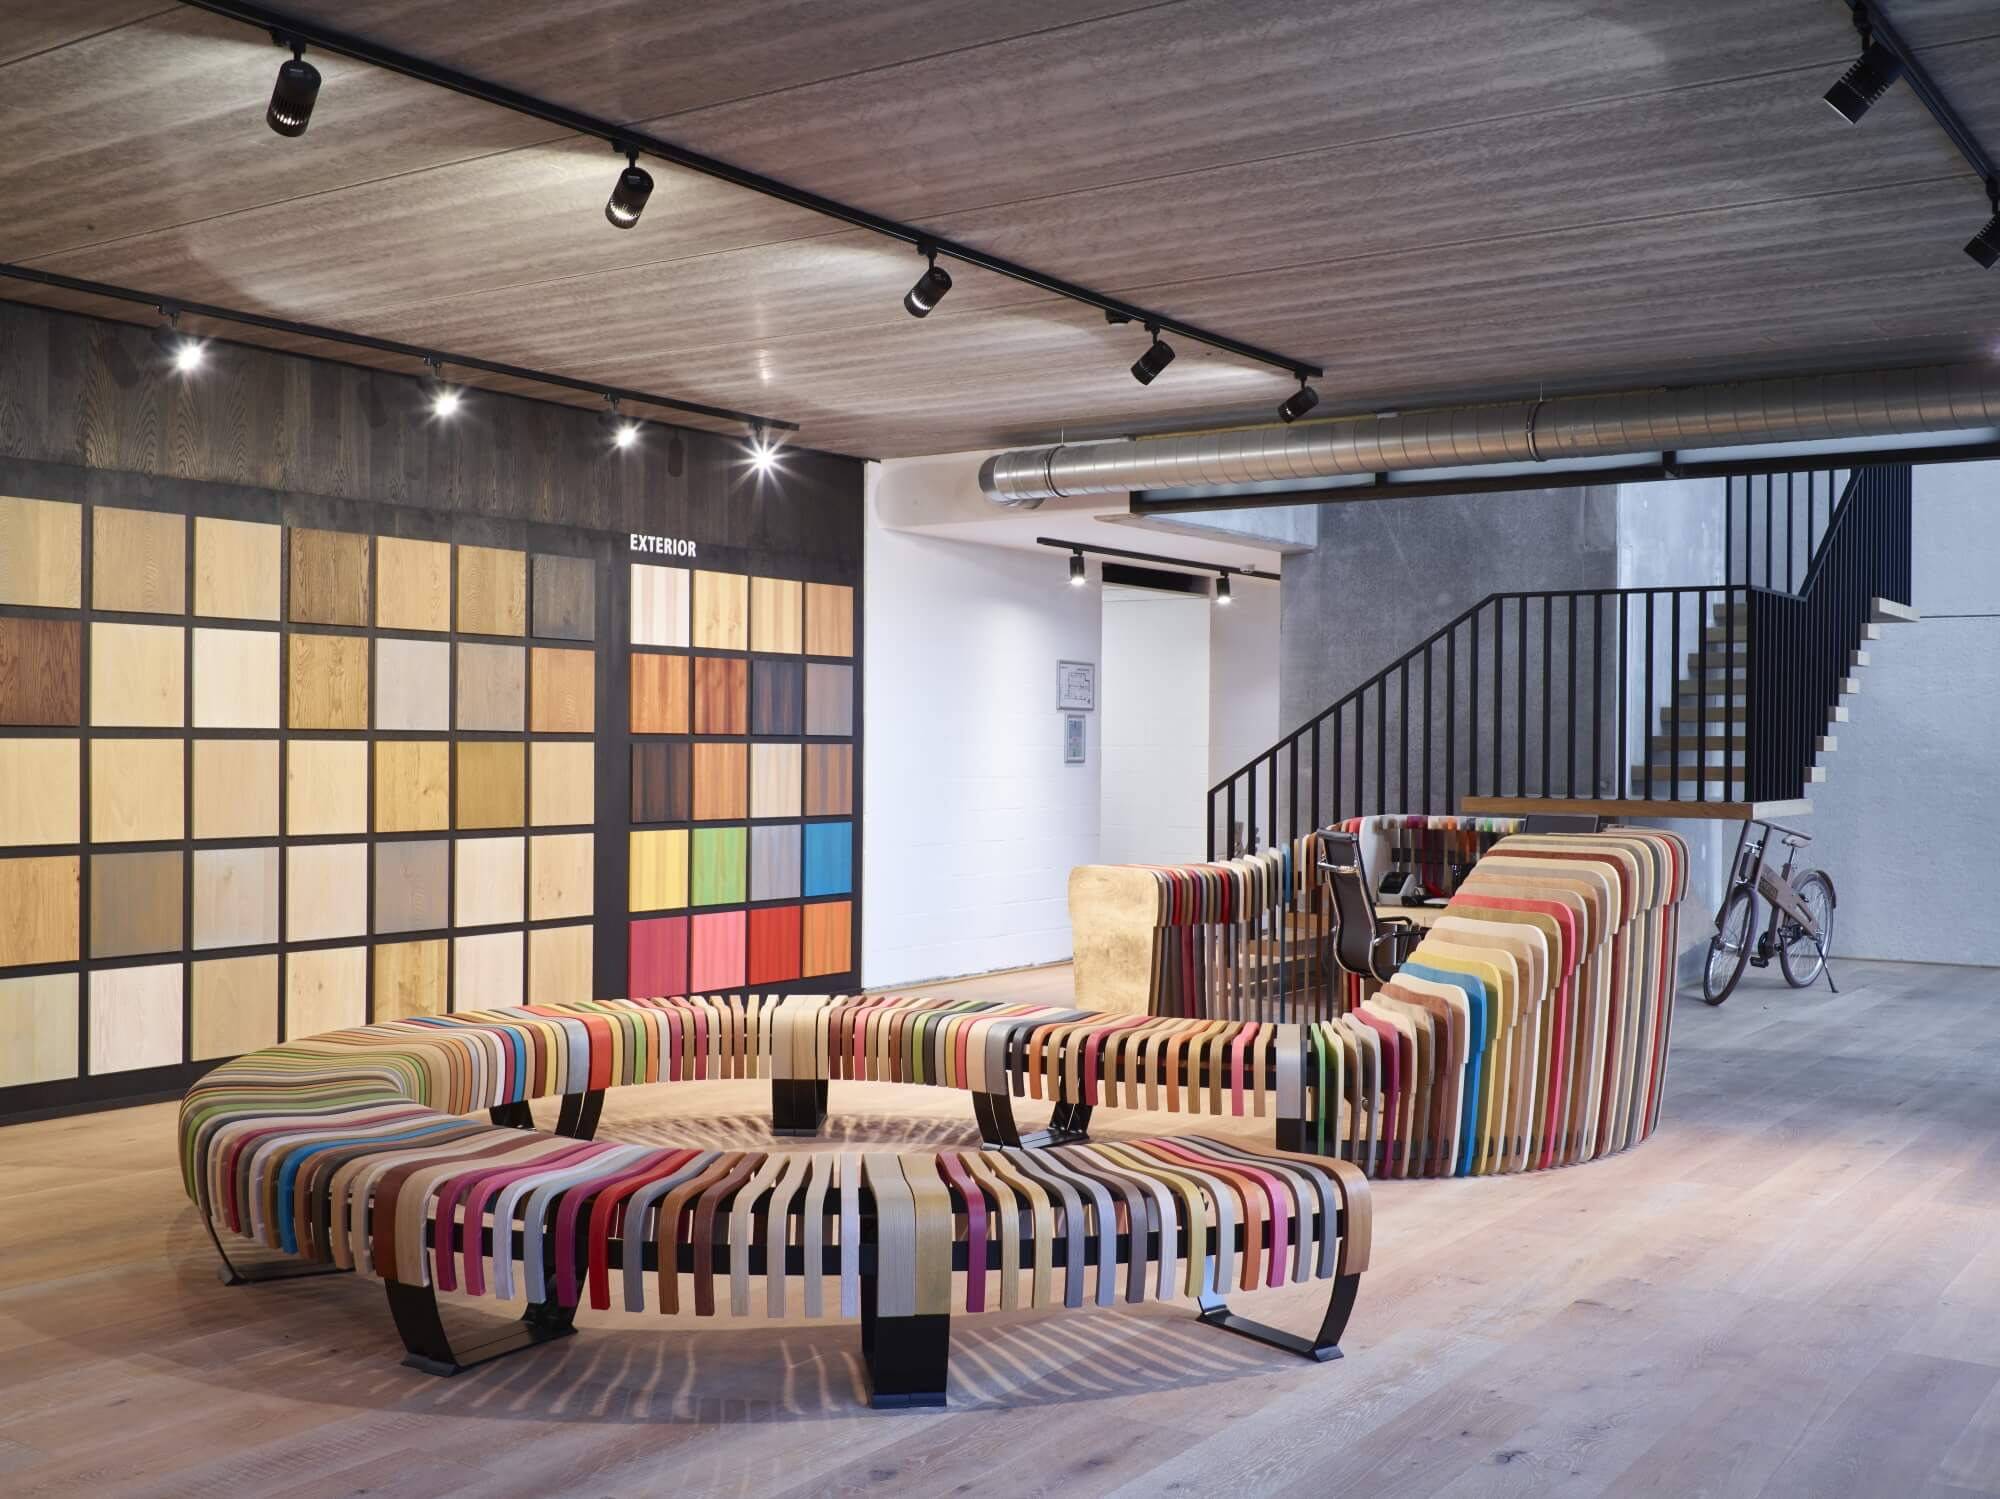 Rubio Monocoat colorful wood bench at headquarters in Belgium.